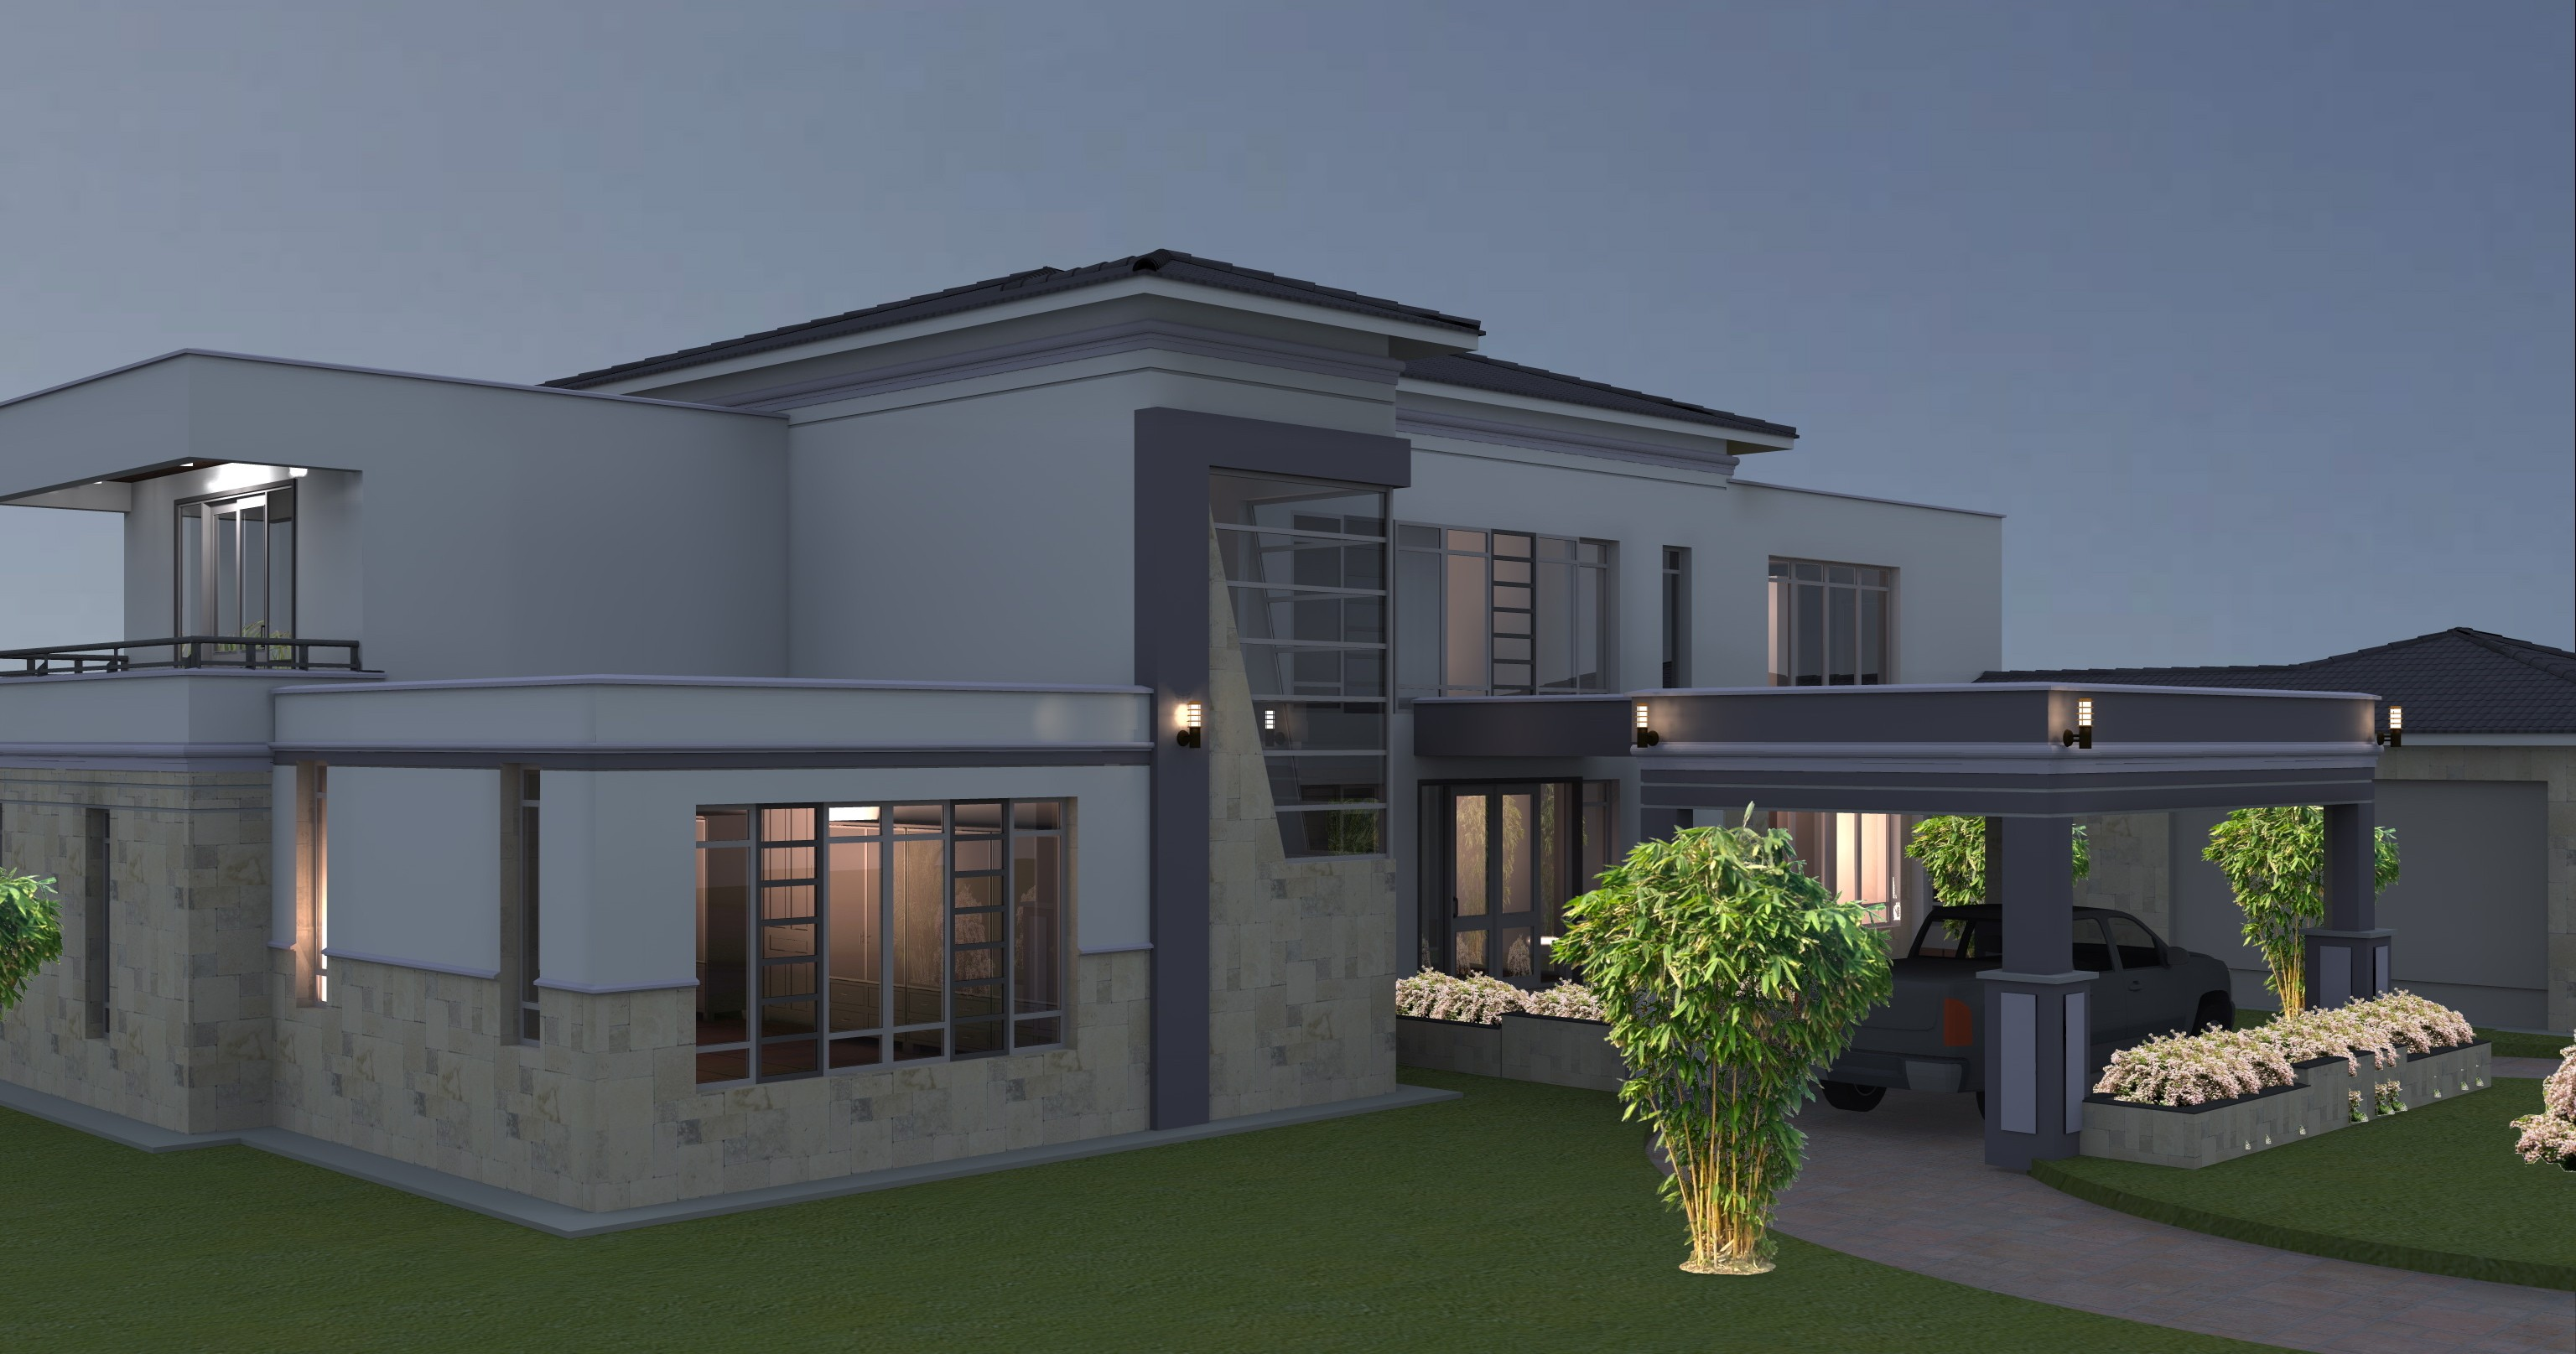 PROPOSED FIVE BEDROOM HOUSE